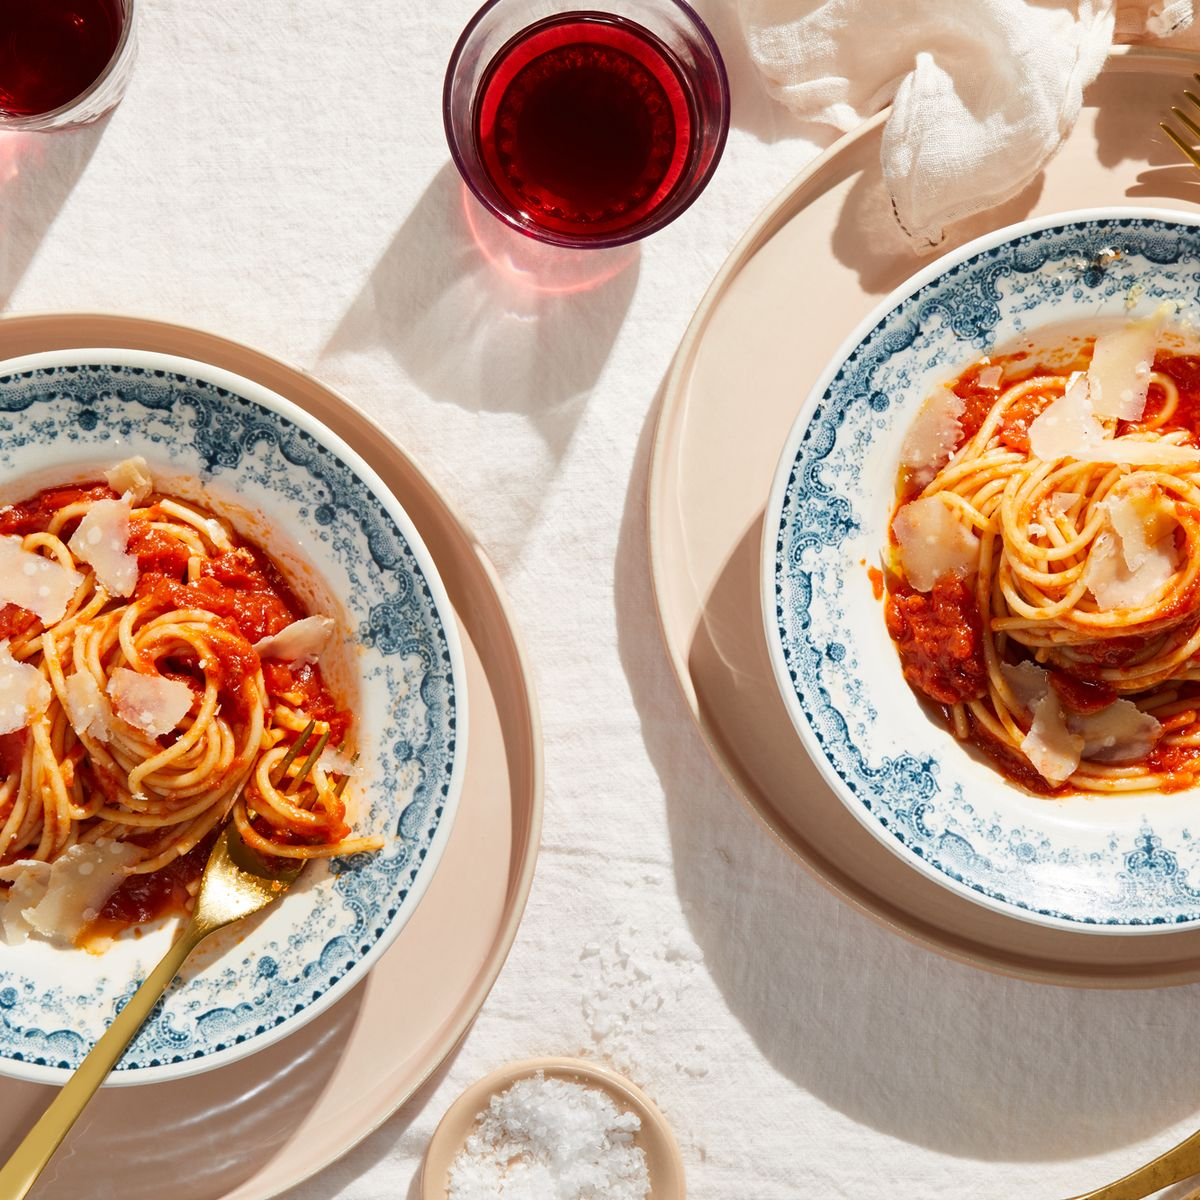 Marcella Hazan's Tomato Sauce With Onion & Butter